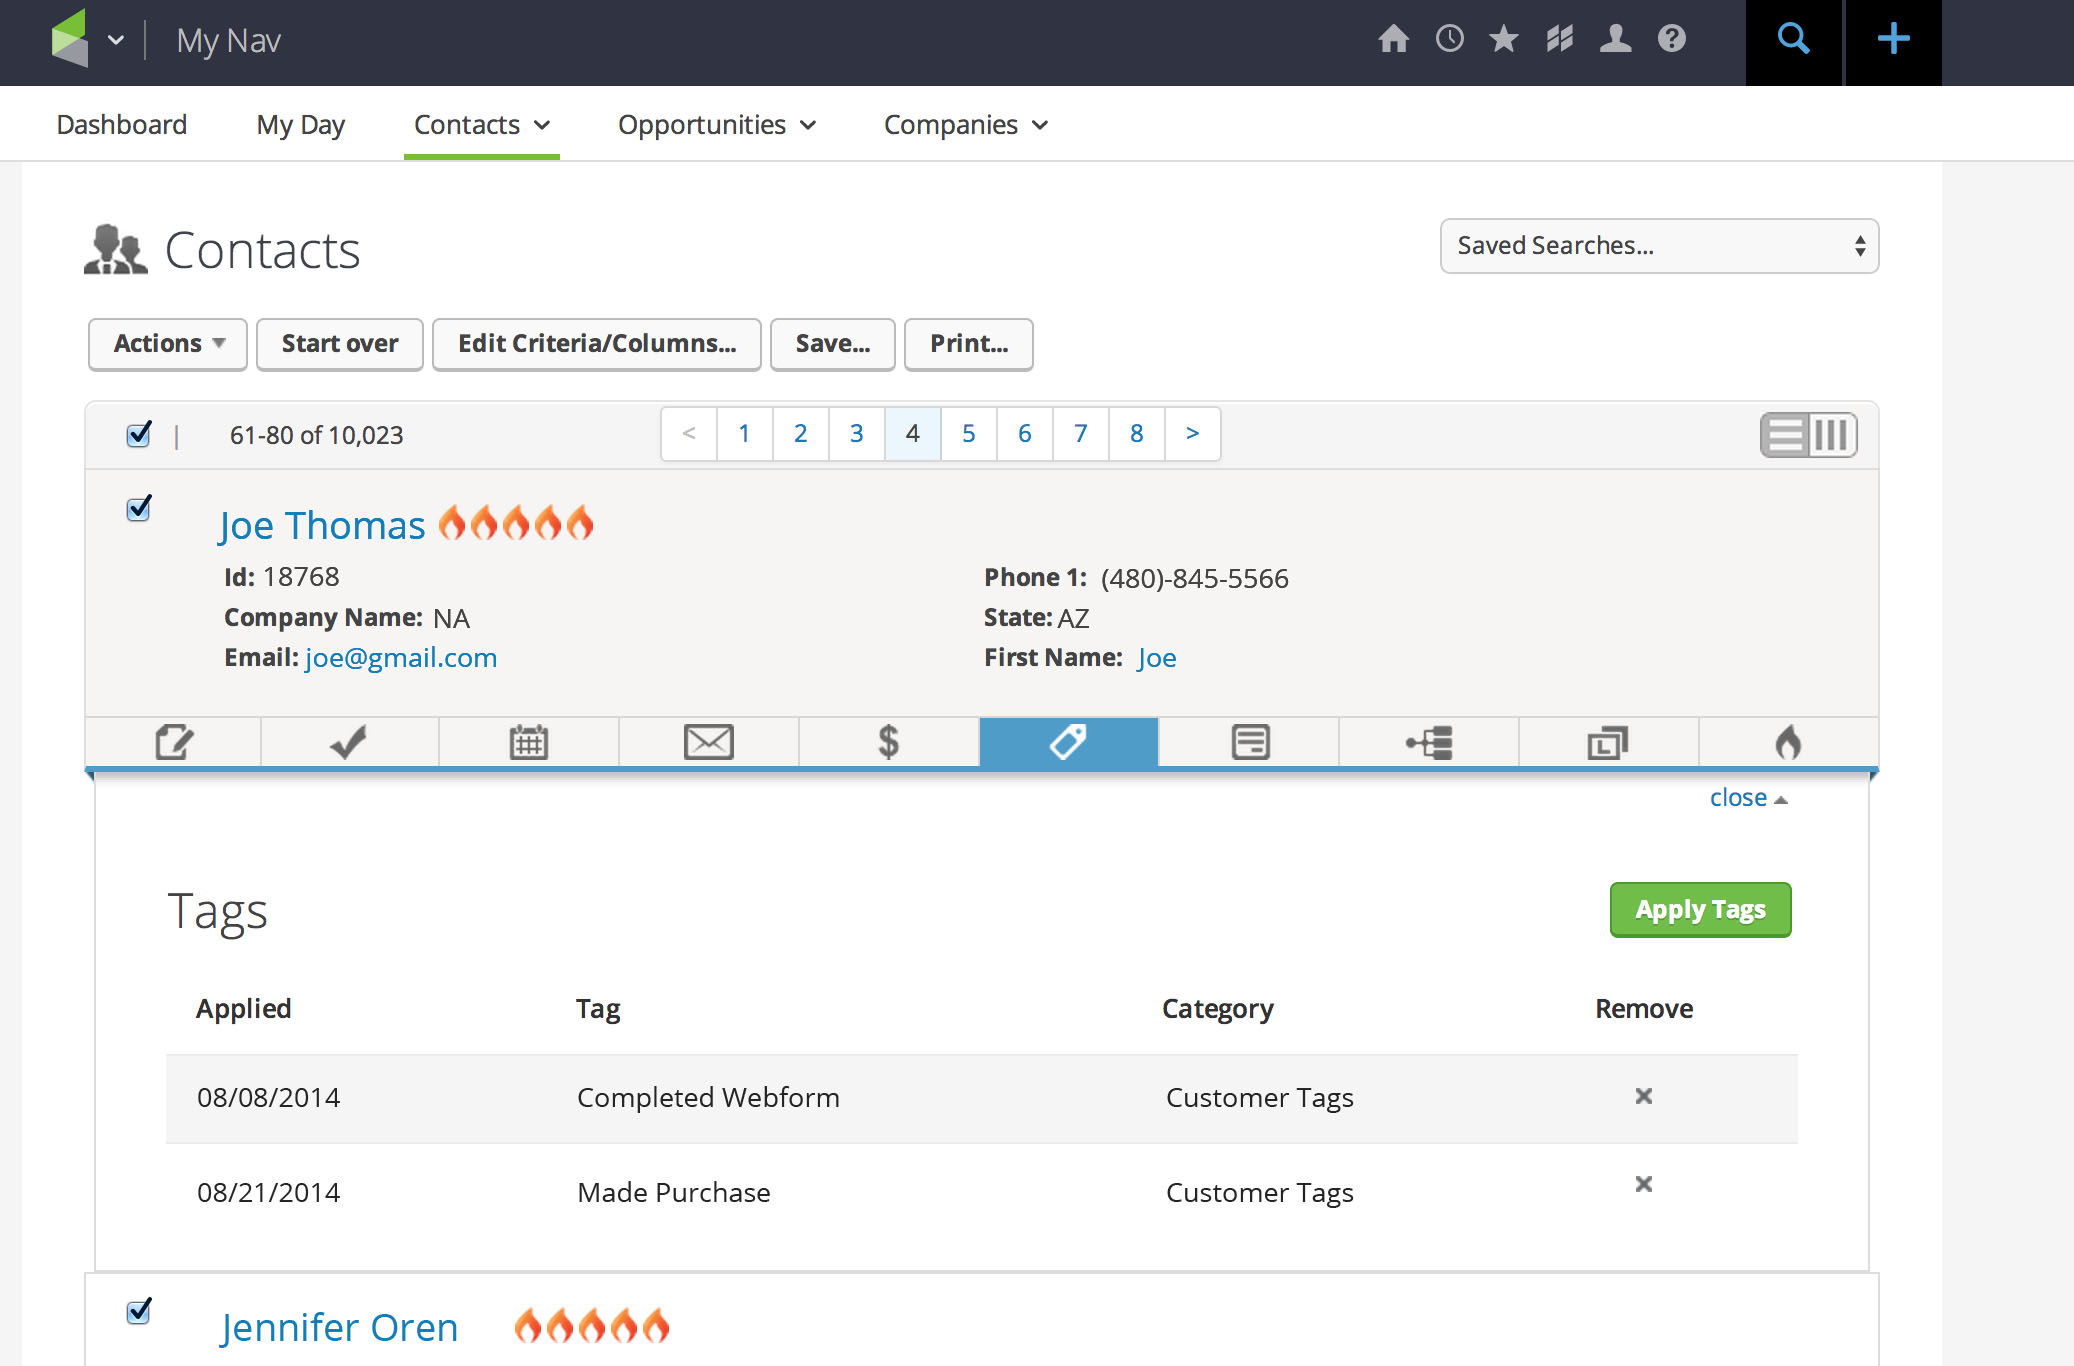 Infusionsoft screenshot: Contact records in Infusionsoft's CRM